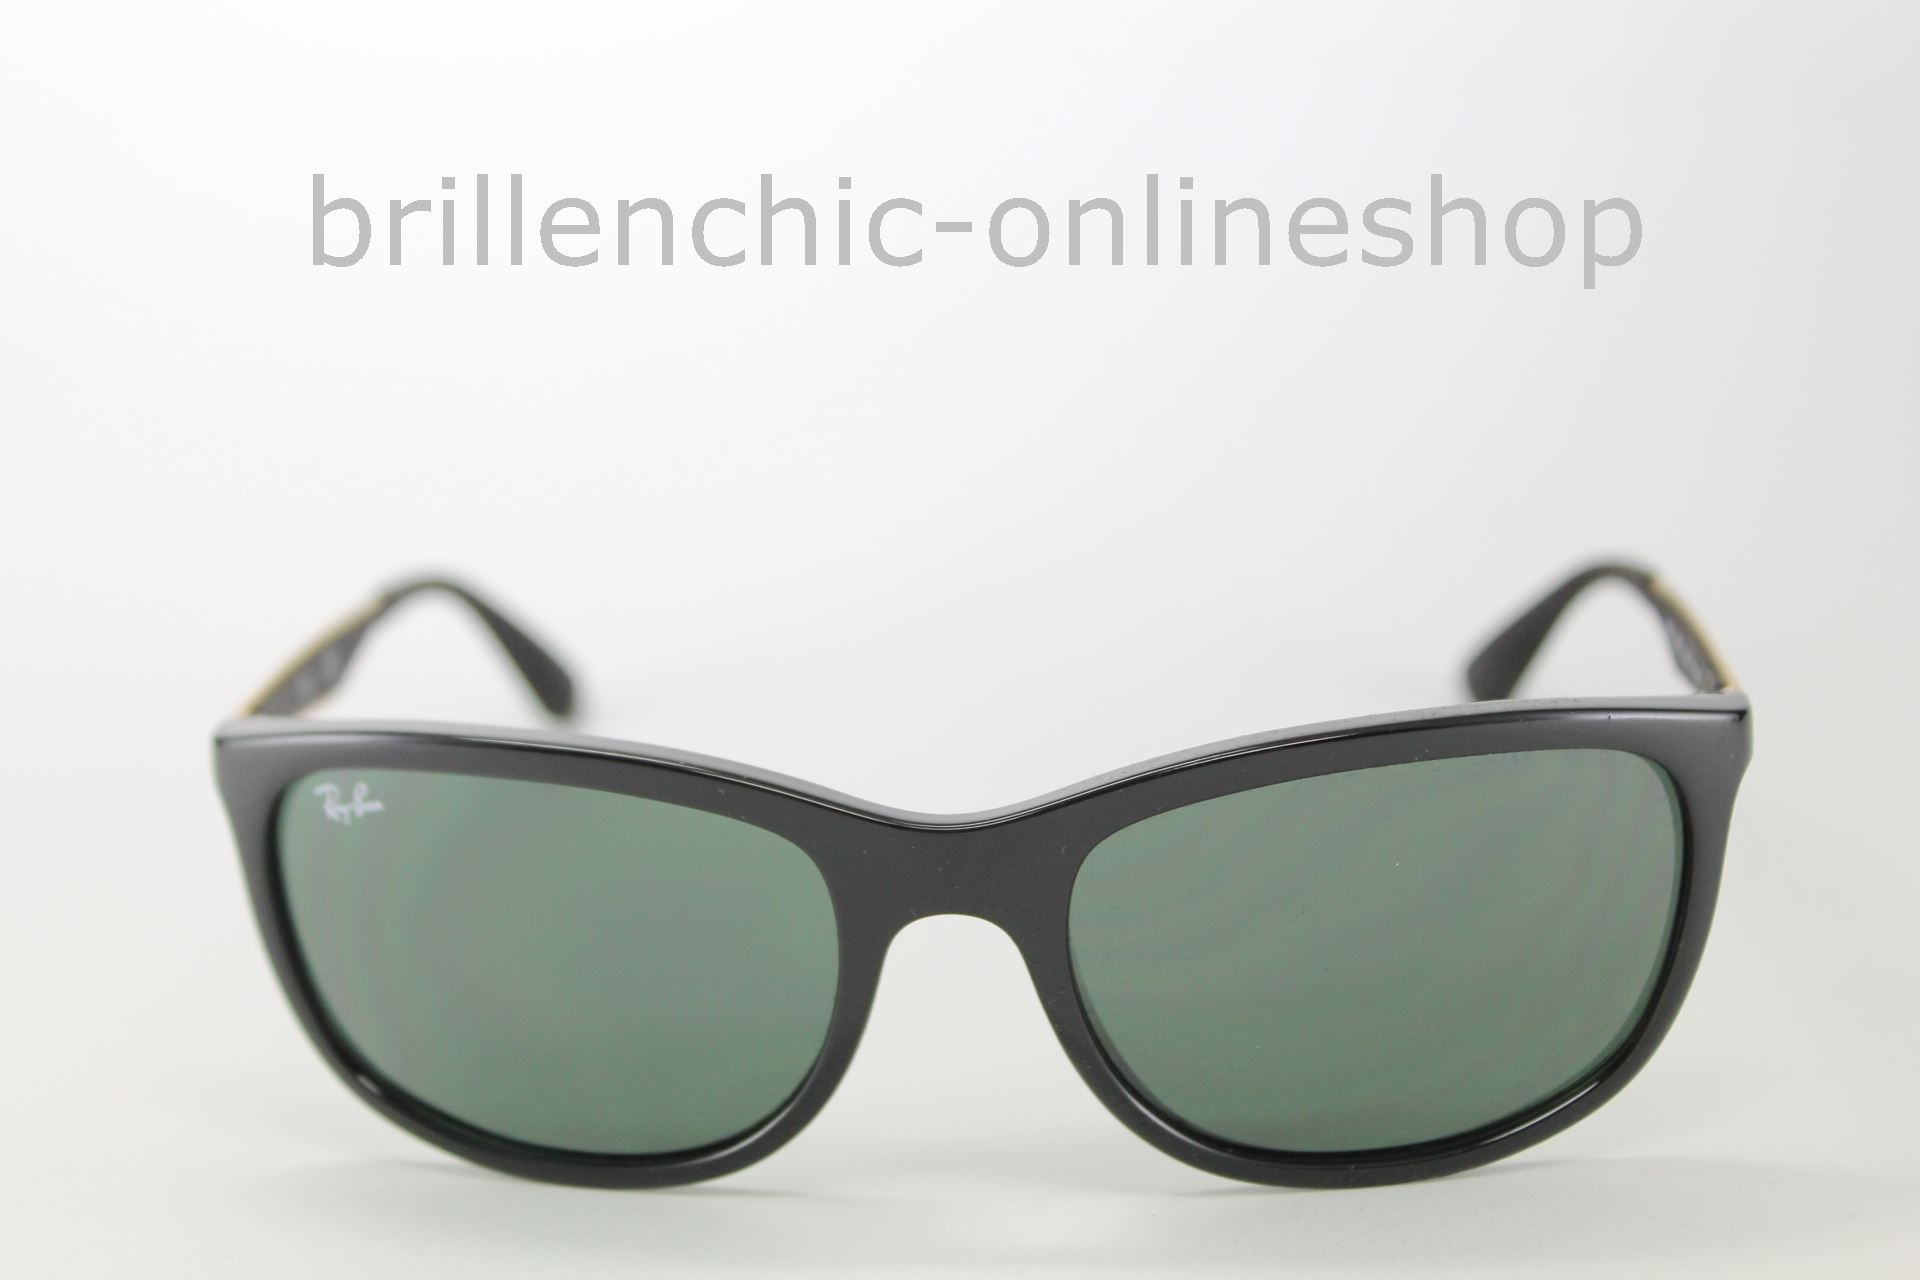 4bc1ff529a4 Brillenchic-onlineshop in Berlin - Ray Ban RB 4267 6227 71